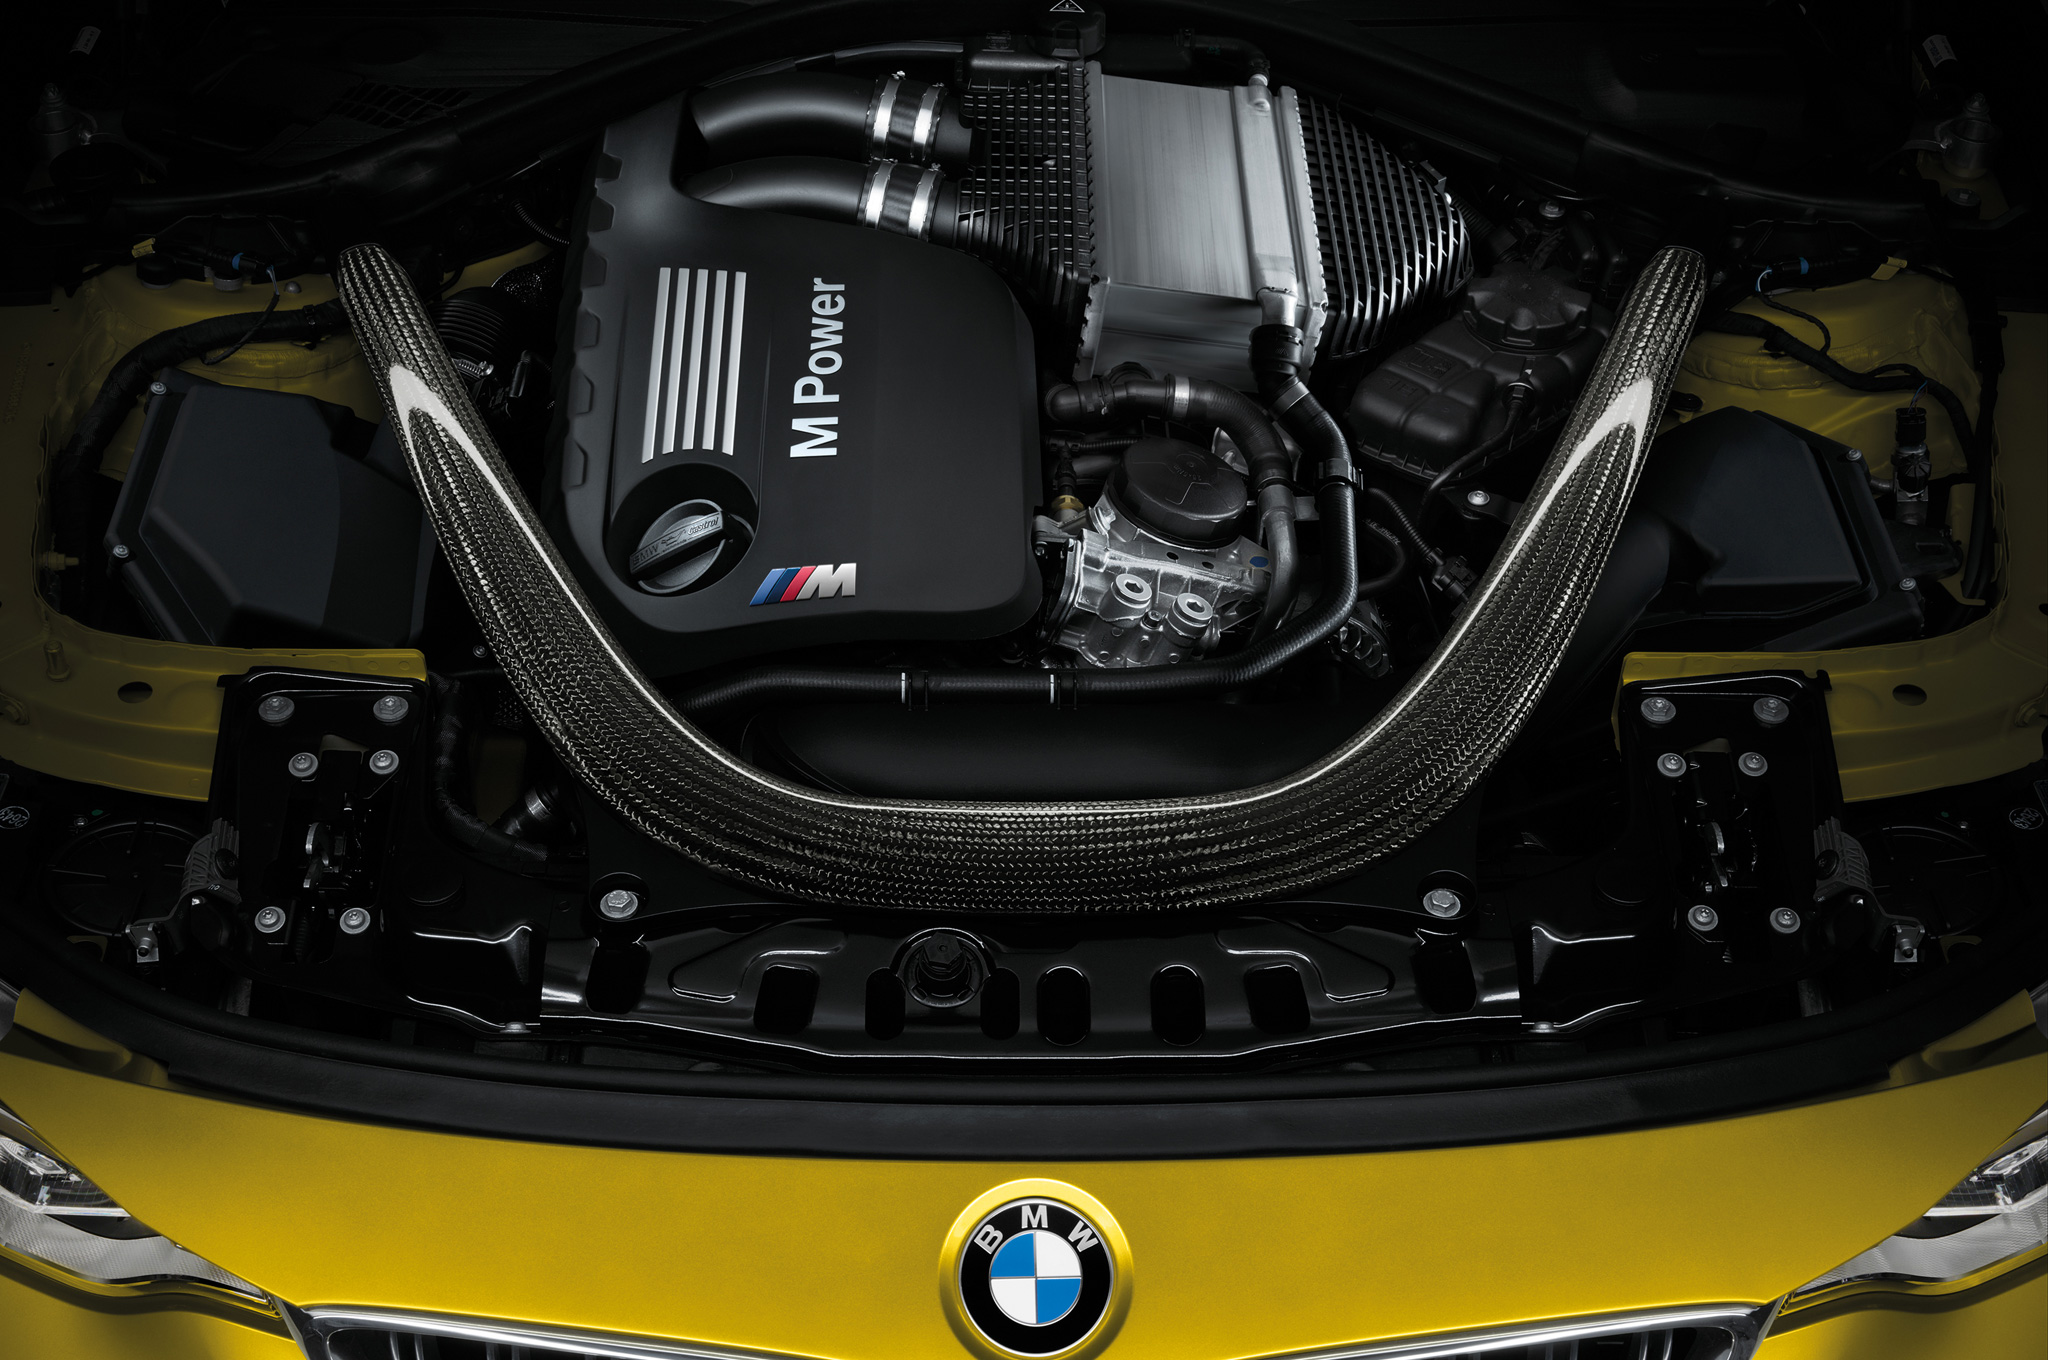 2015 Bmw M4 Engine View (Photo 27 of 41)